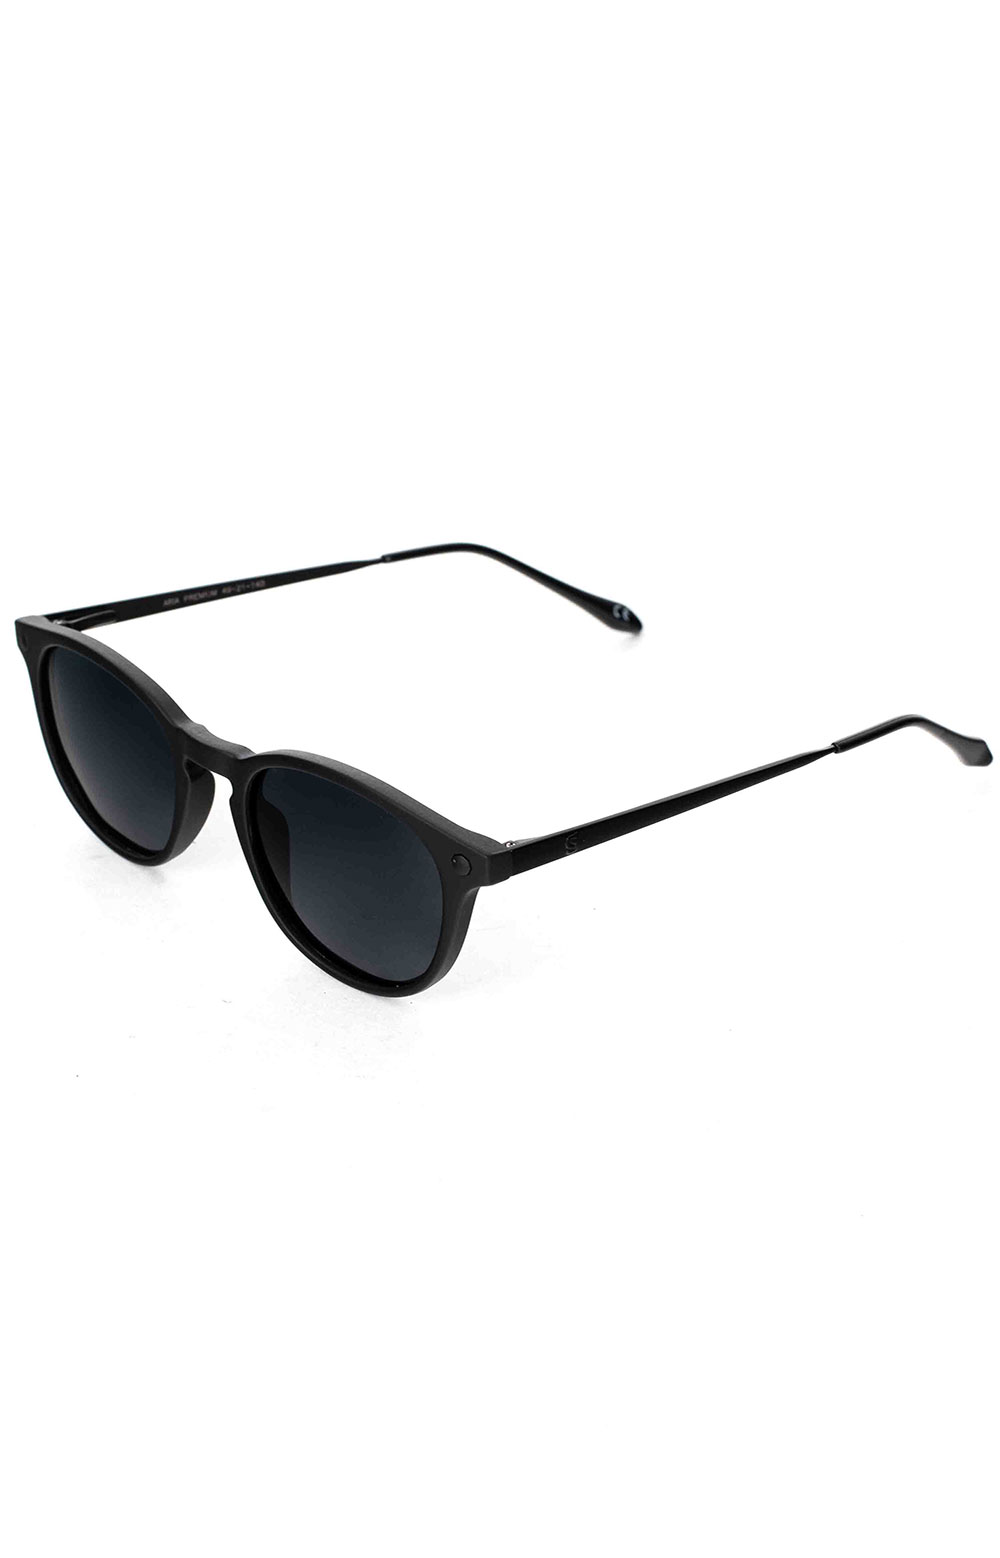 Aria Sunglasses - Matte Back Polarized